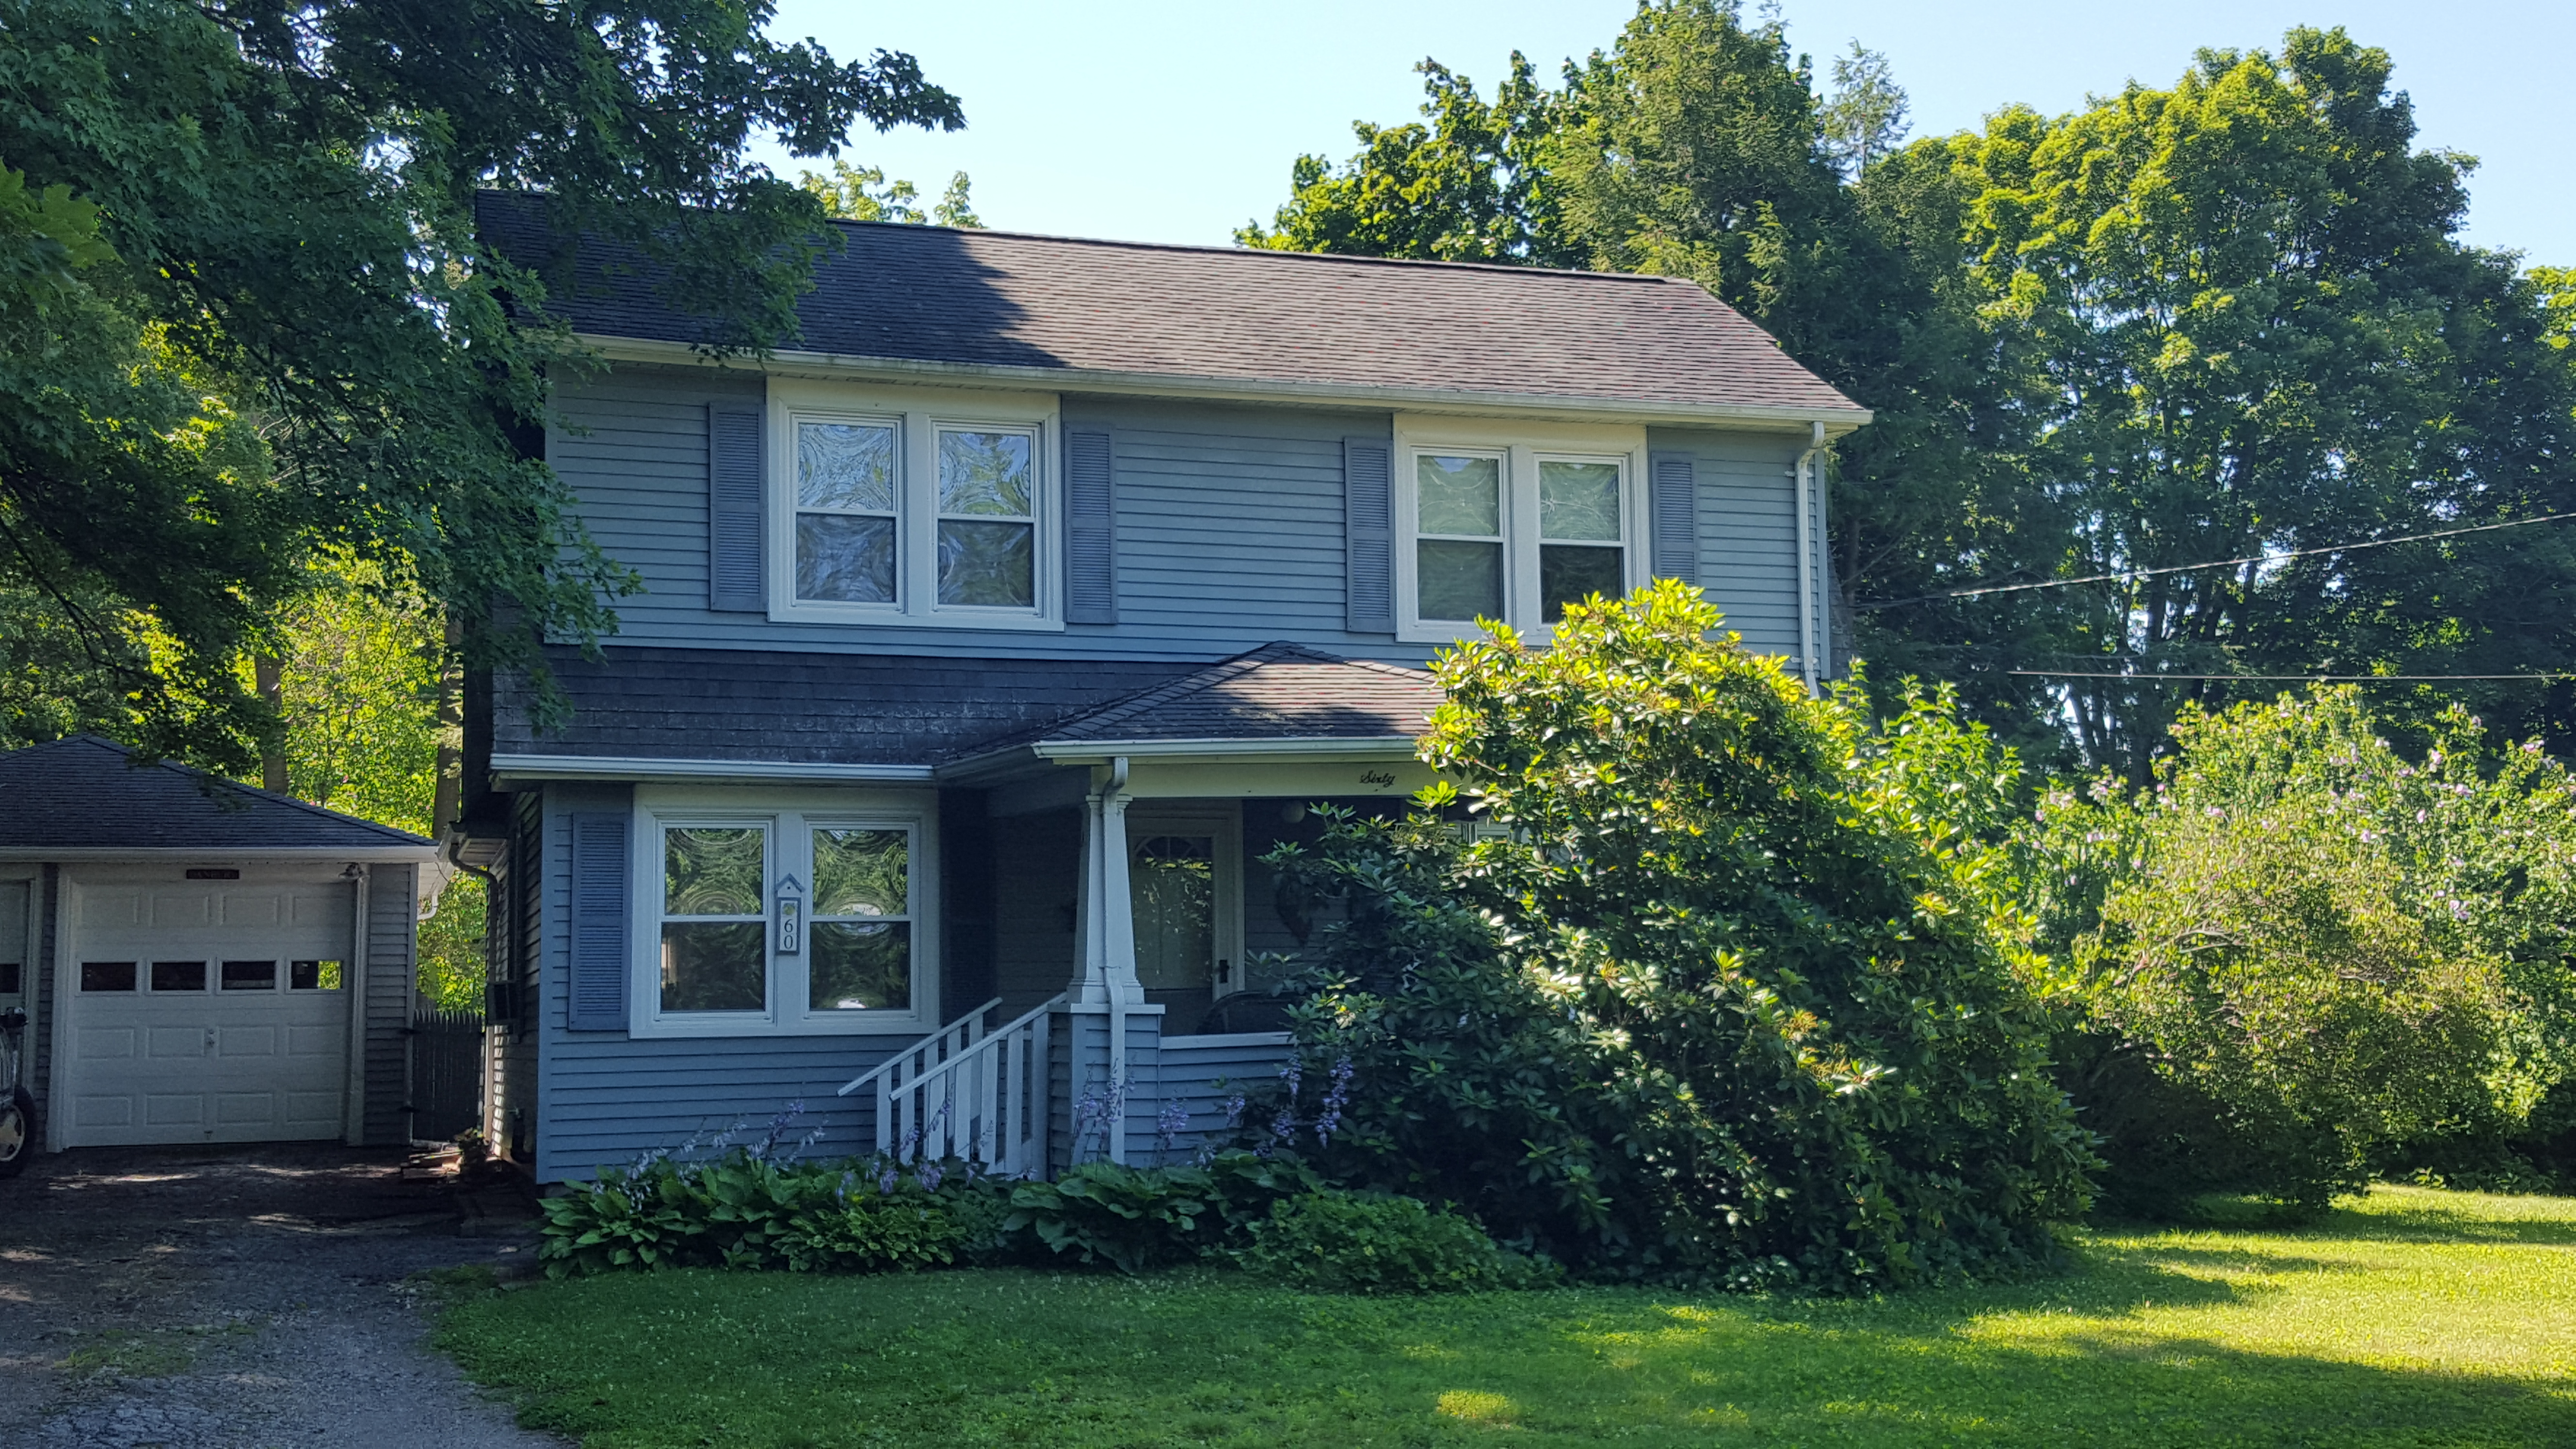 Single Family Home for Sale at Charming Farmhouse Colonial 60 Wooster Heights Danbury, Connecticut, 06810 United States